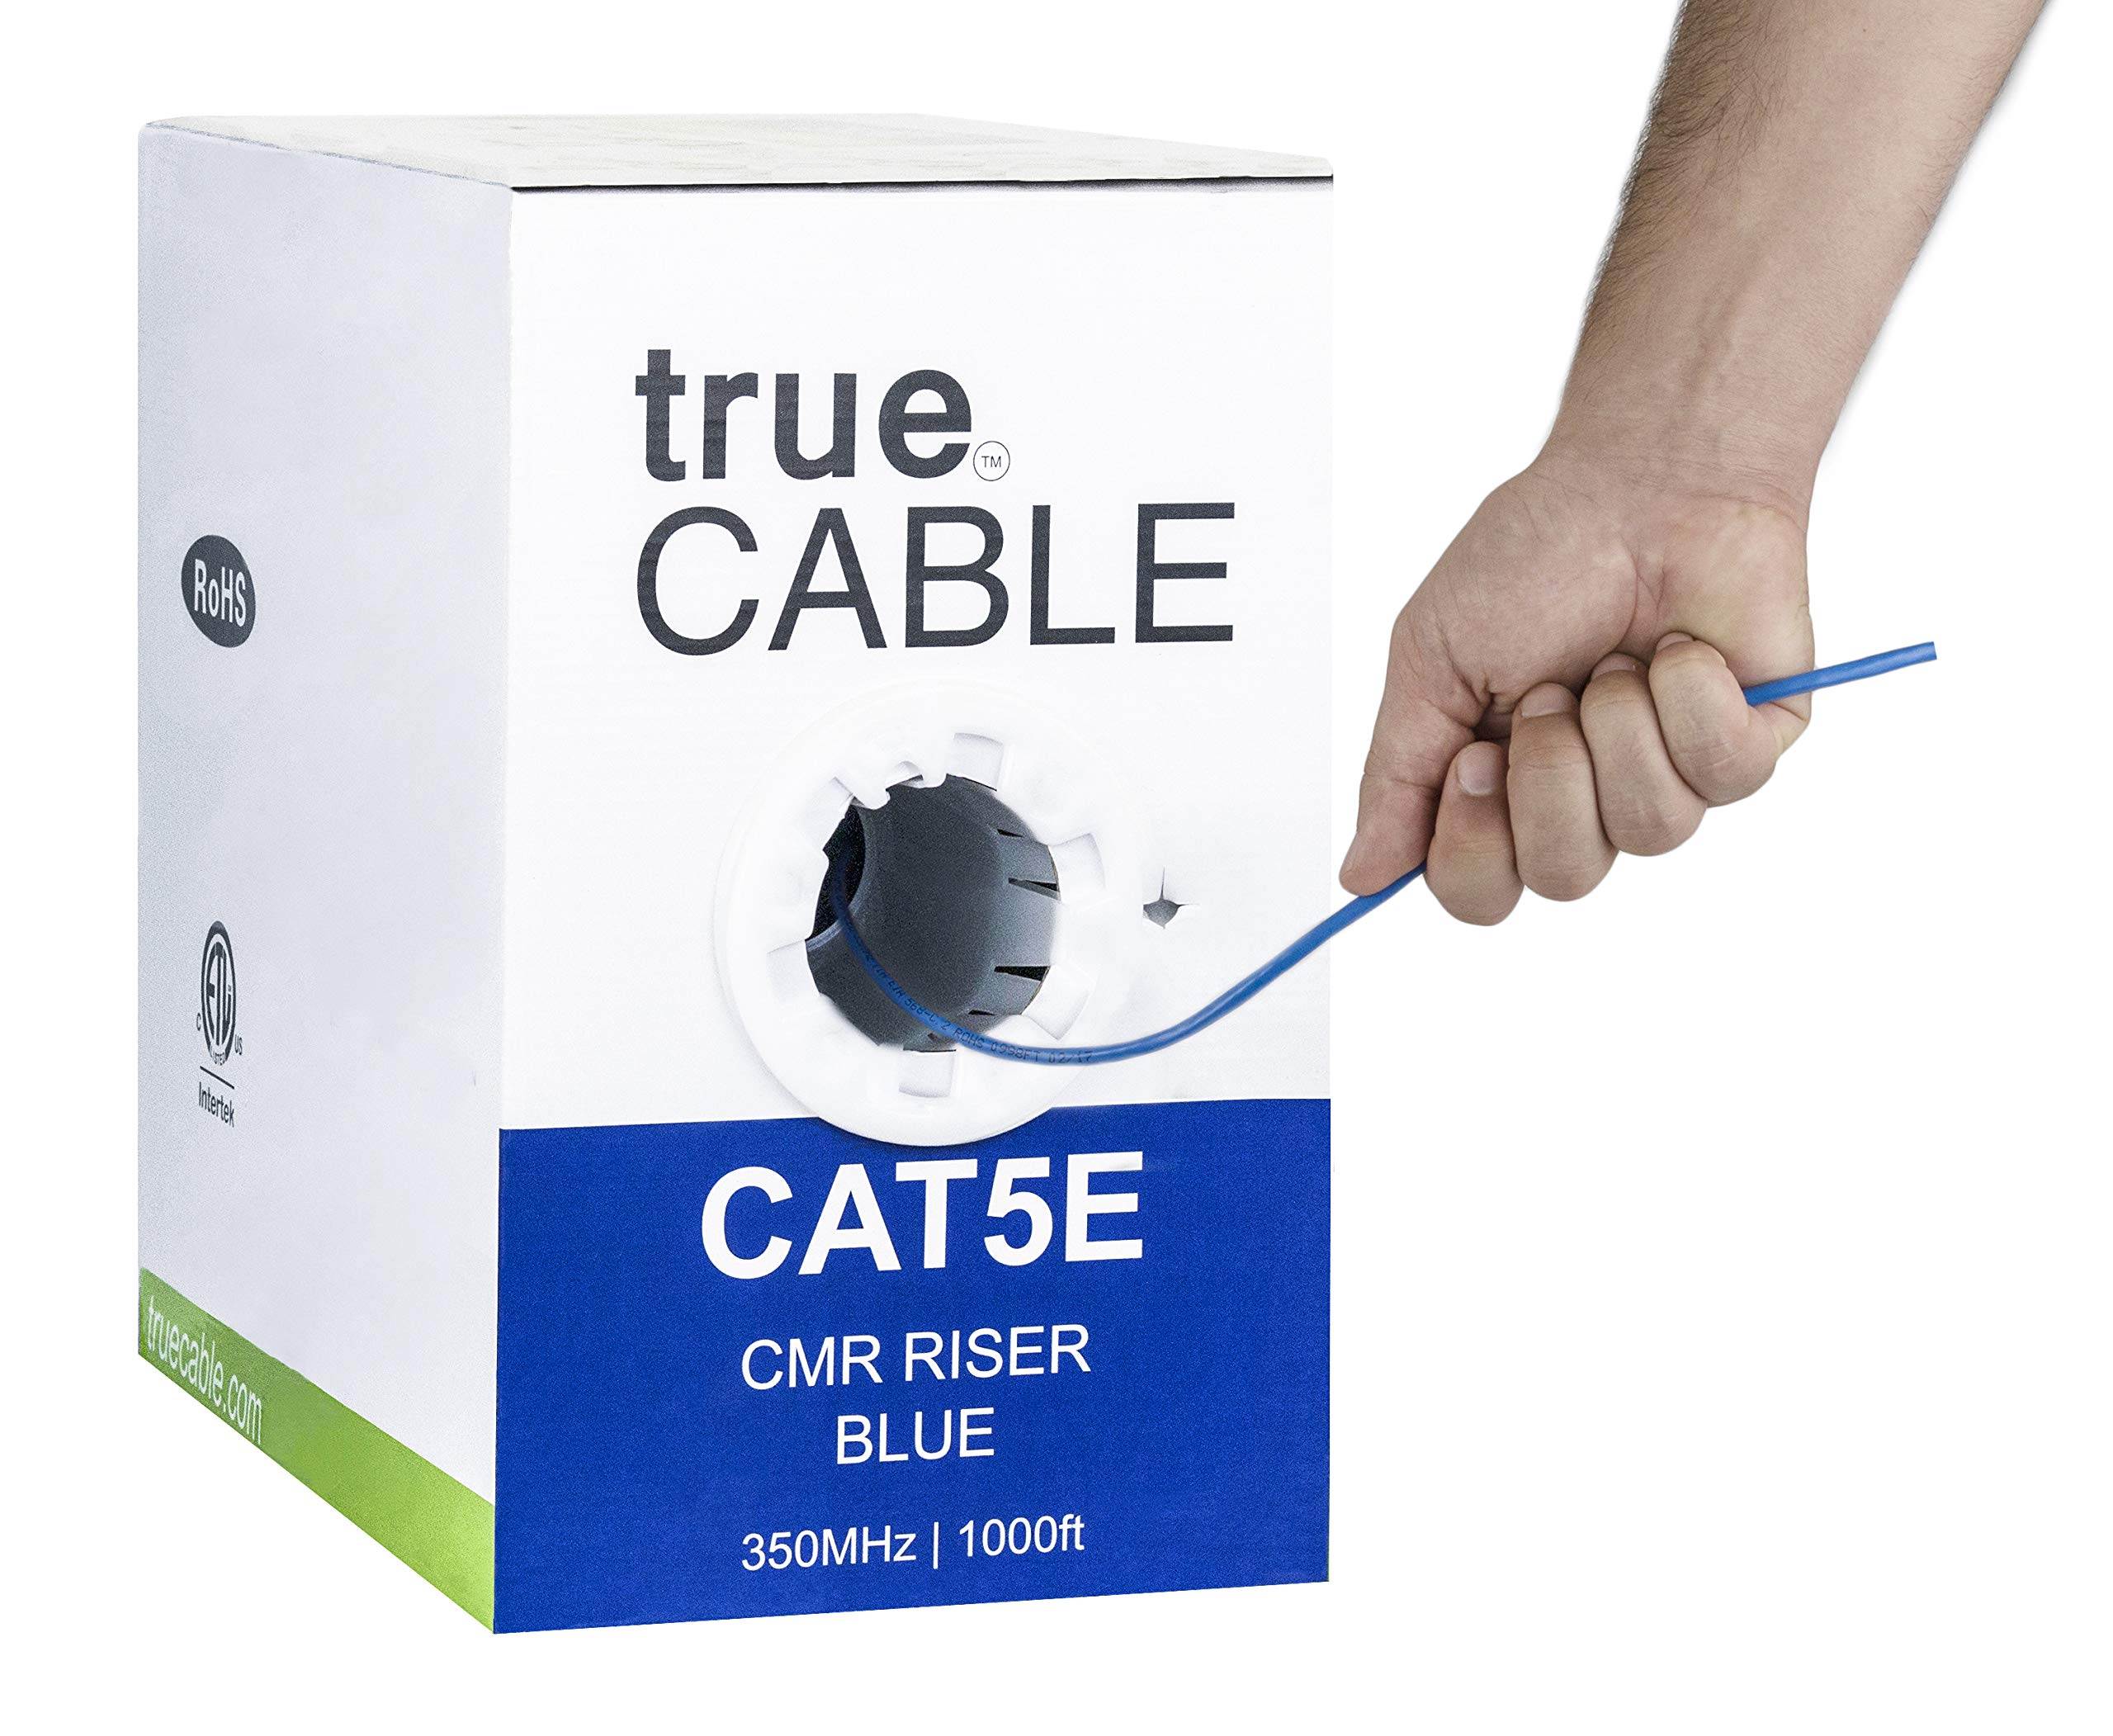 Cat5e Riser (CMR), 1000ft, Blue, 24AWG 4 Pair Solid Bare Copper, 350MHz, ETL Listed, Unshielded Twisted Pair (UTP), Bulk Ethernet Cable, trueCABLE by trueCABLE